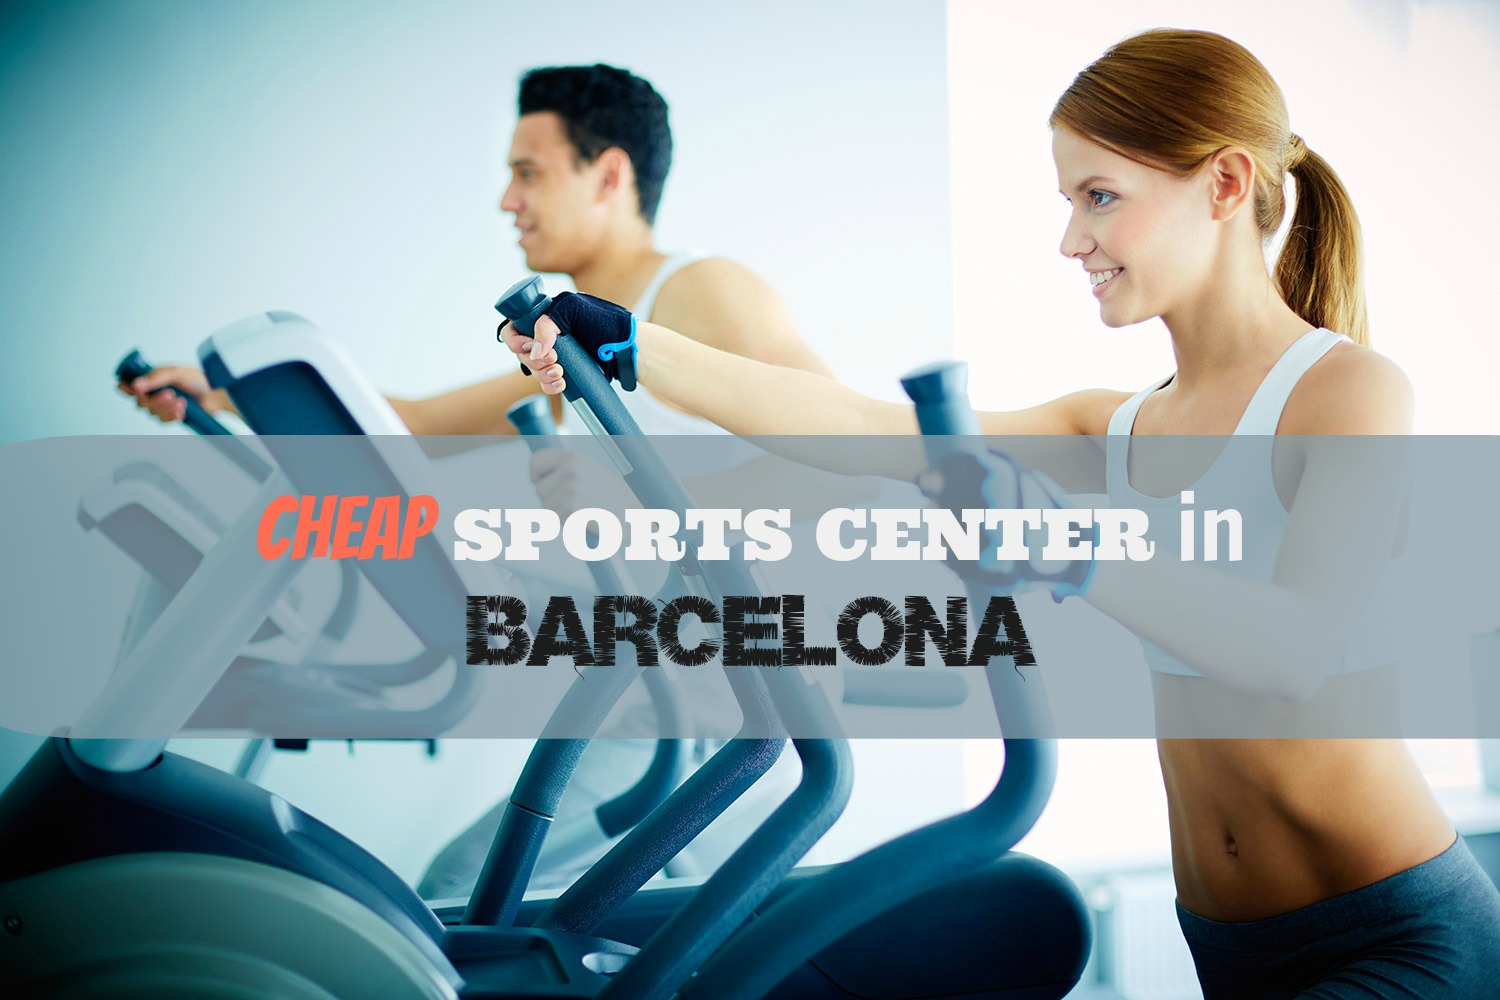 Top 3 des clubs de sport low cost à Barcelone